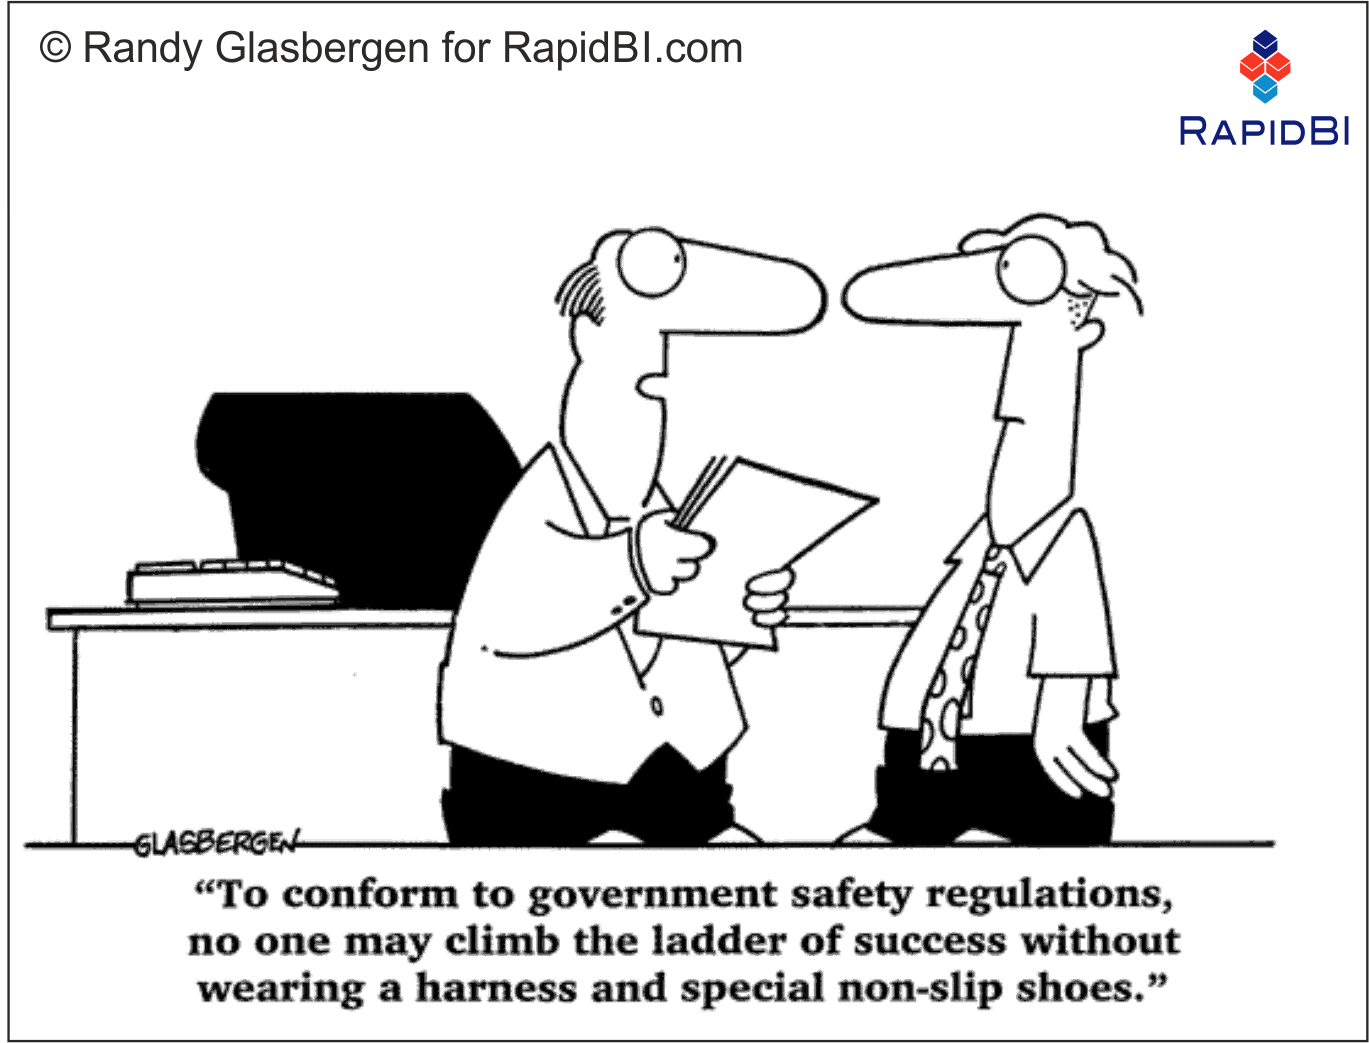 RapidBI Daily Business Cartoon #119